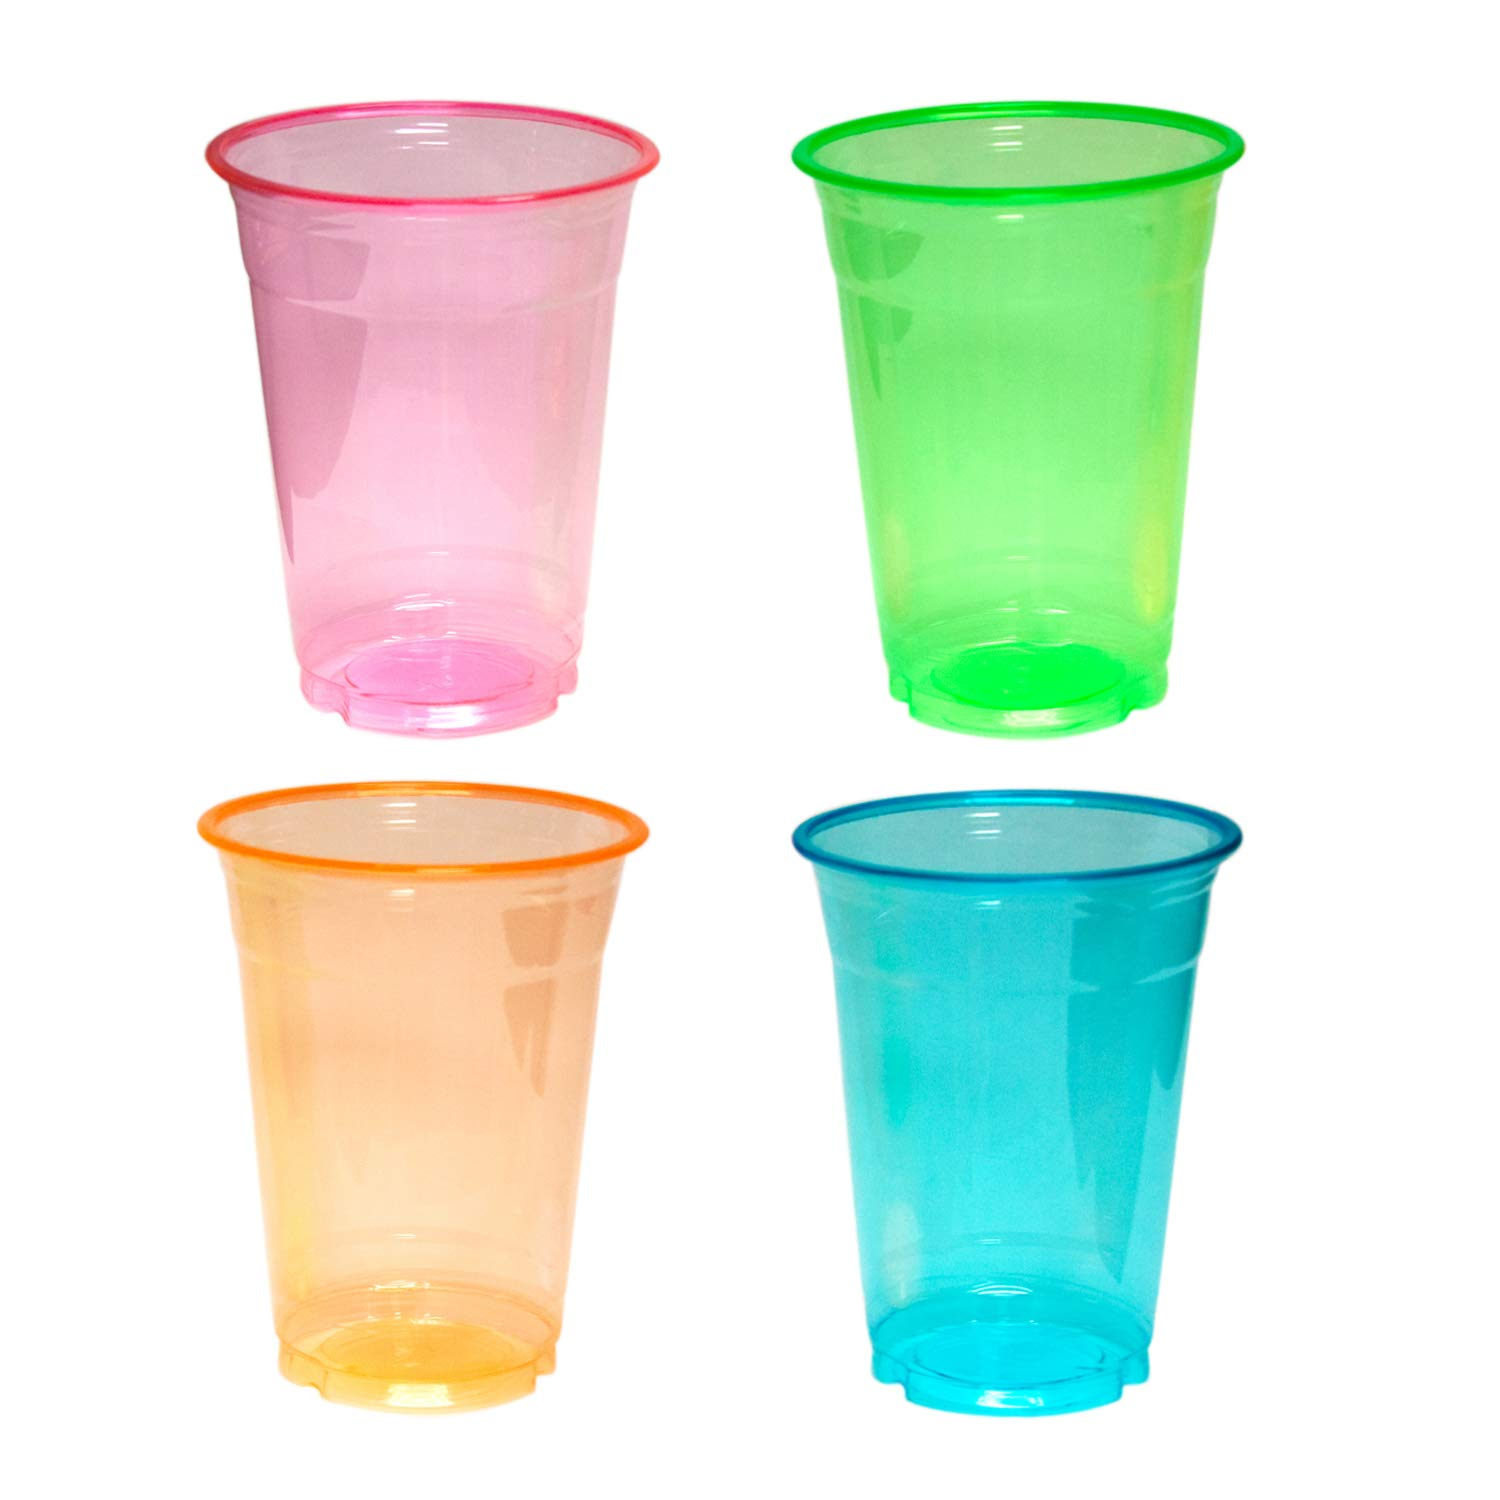 Party Essentials N166409 Soft Plastic 16 oz. Party Cups/Pint Glasses, Assorted Neon (Pack of 640) by Party Essentials